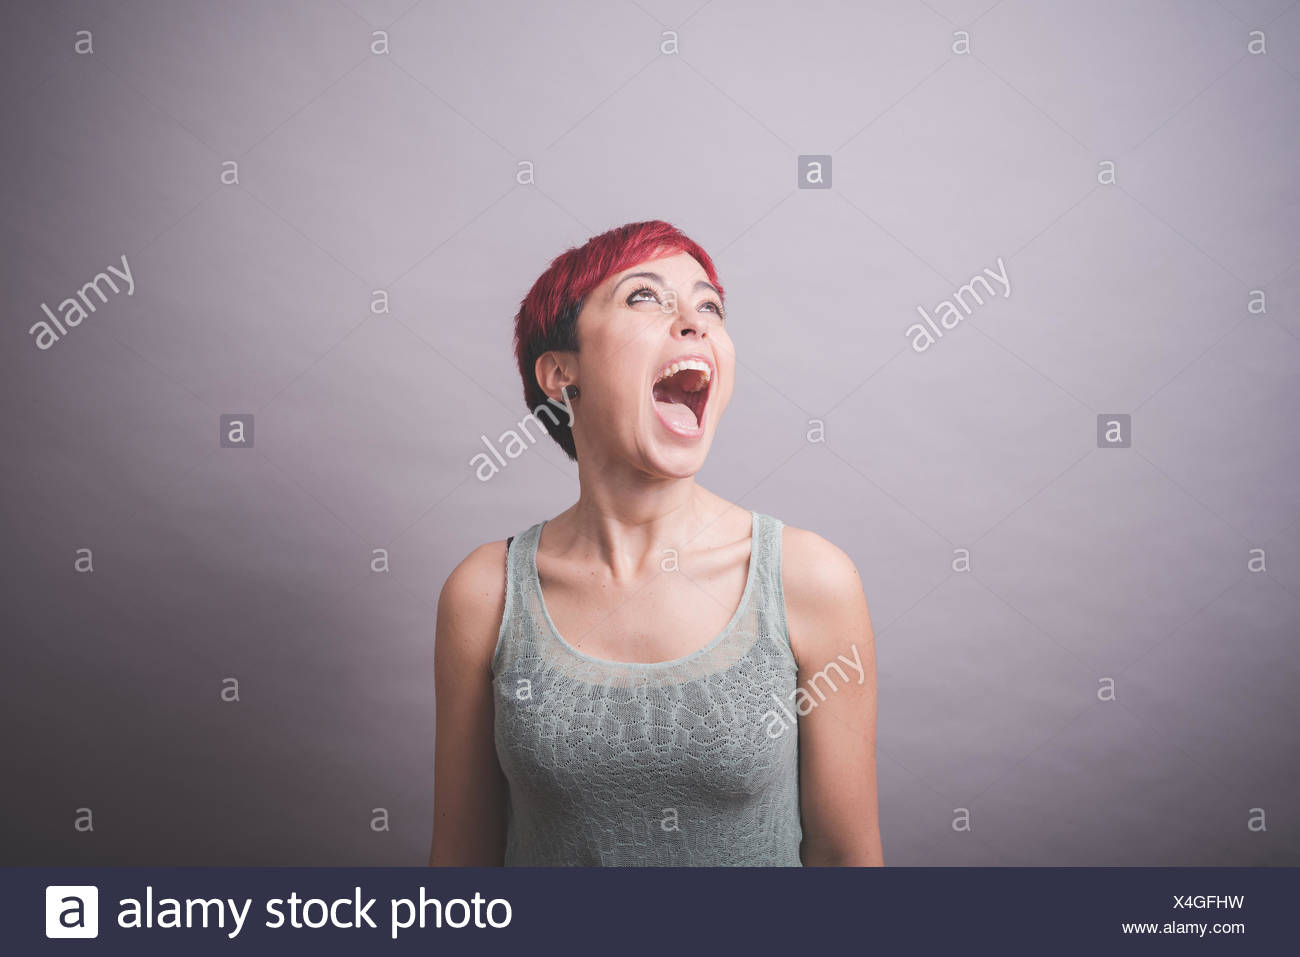 Studio portrait of young woman with short pink hair shouting - Stock Image